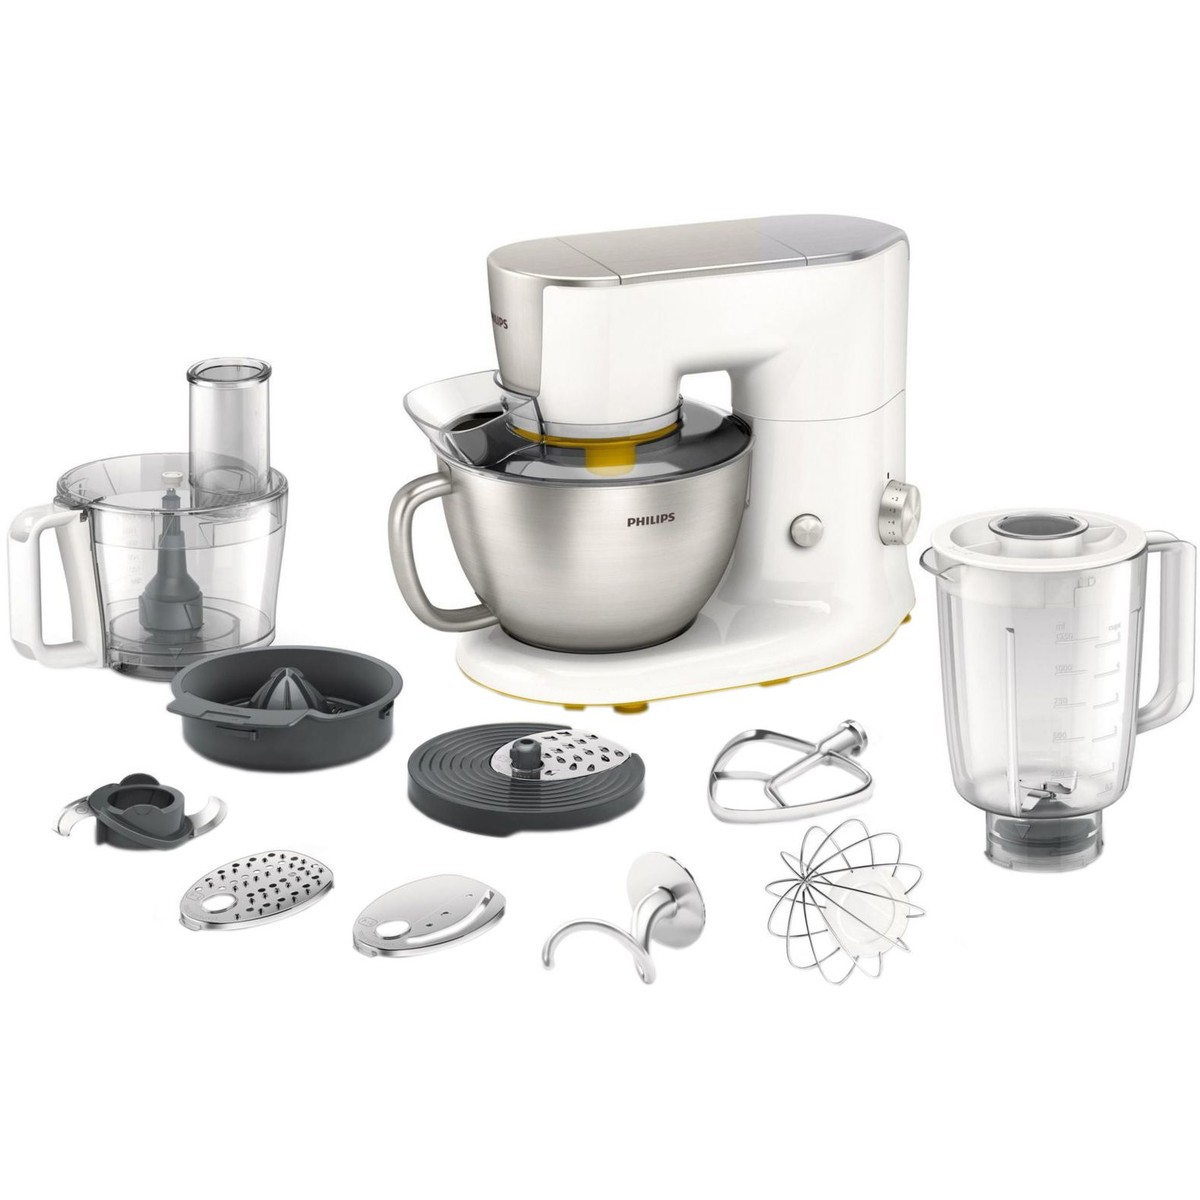 Philips Robot de bucatarie Philips Avance Collection HR7954/00, 900 W,bol 4 l, blender 1.2 l, tocator 1.5 l, 7 viteze + Pulse, Alb